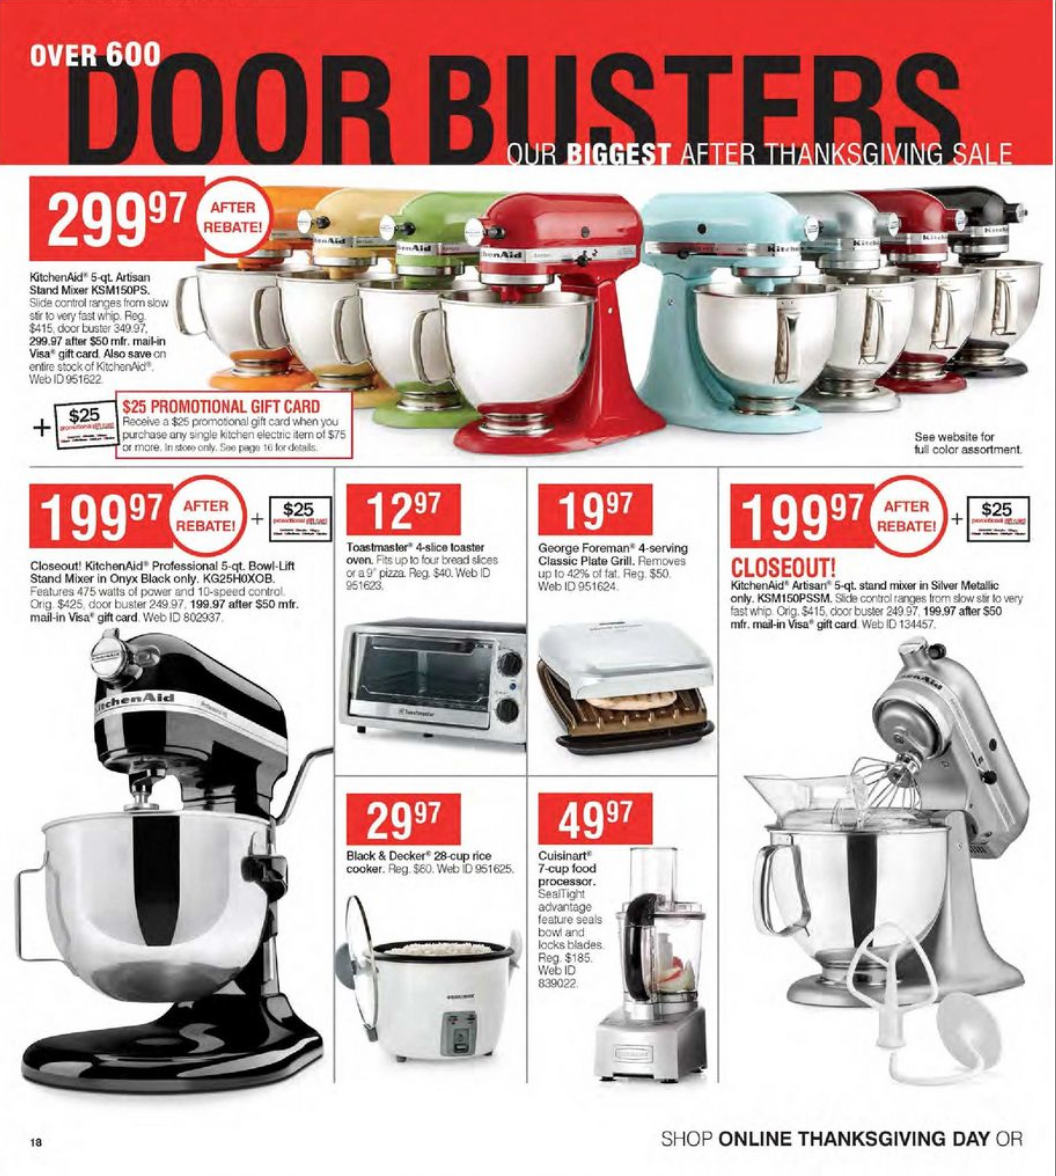 kitchenaid mixer black friday 2018 sale deals blacker friday. Black Bedroom Furniture Sets. Home Design Ideas